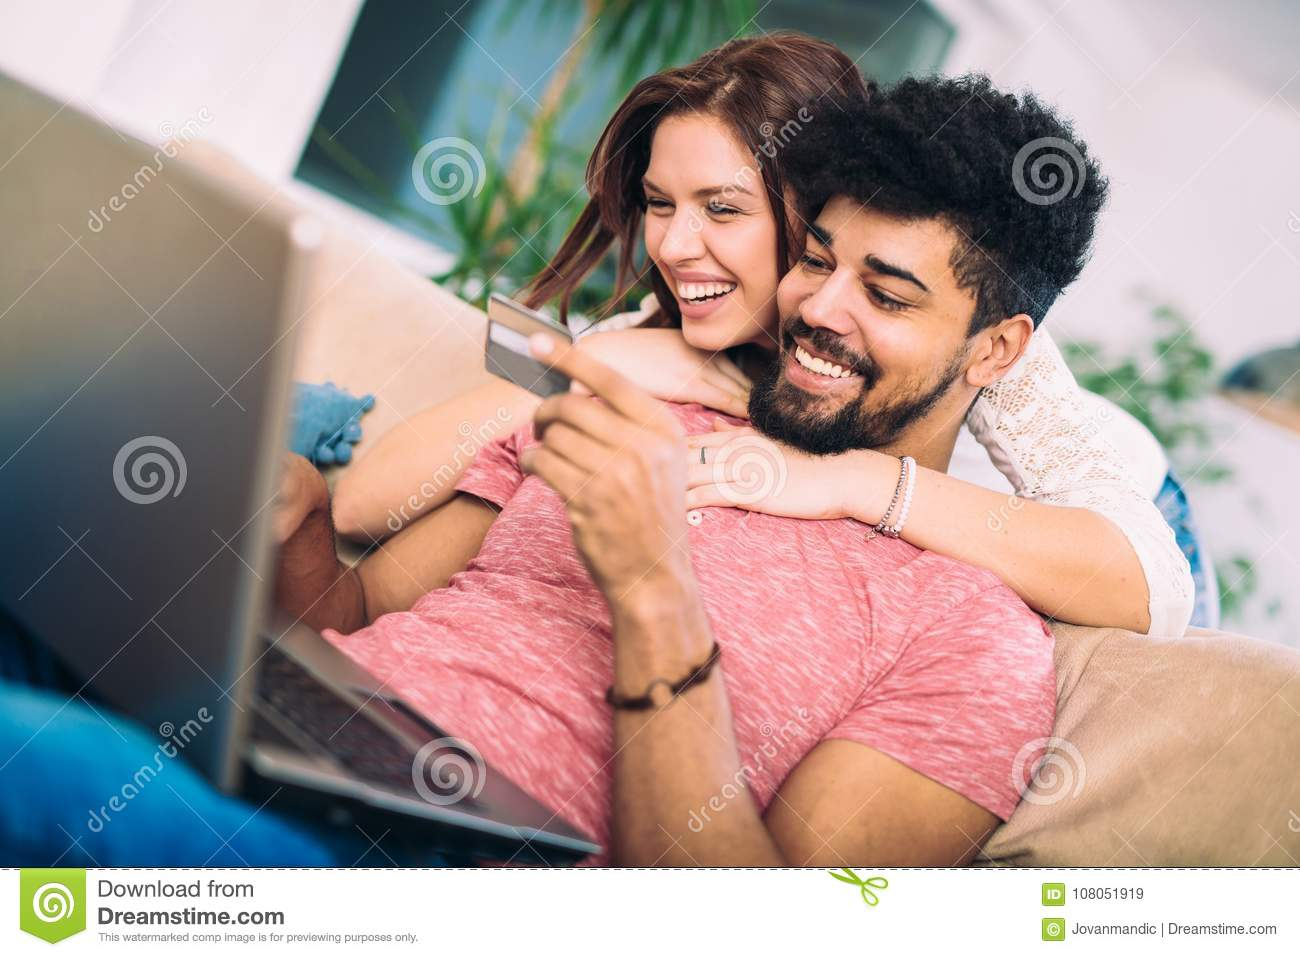 Interracial online